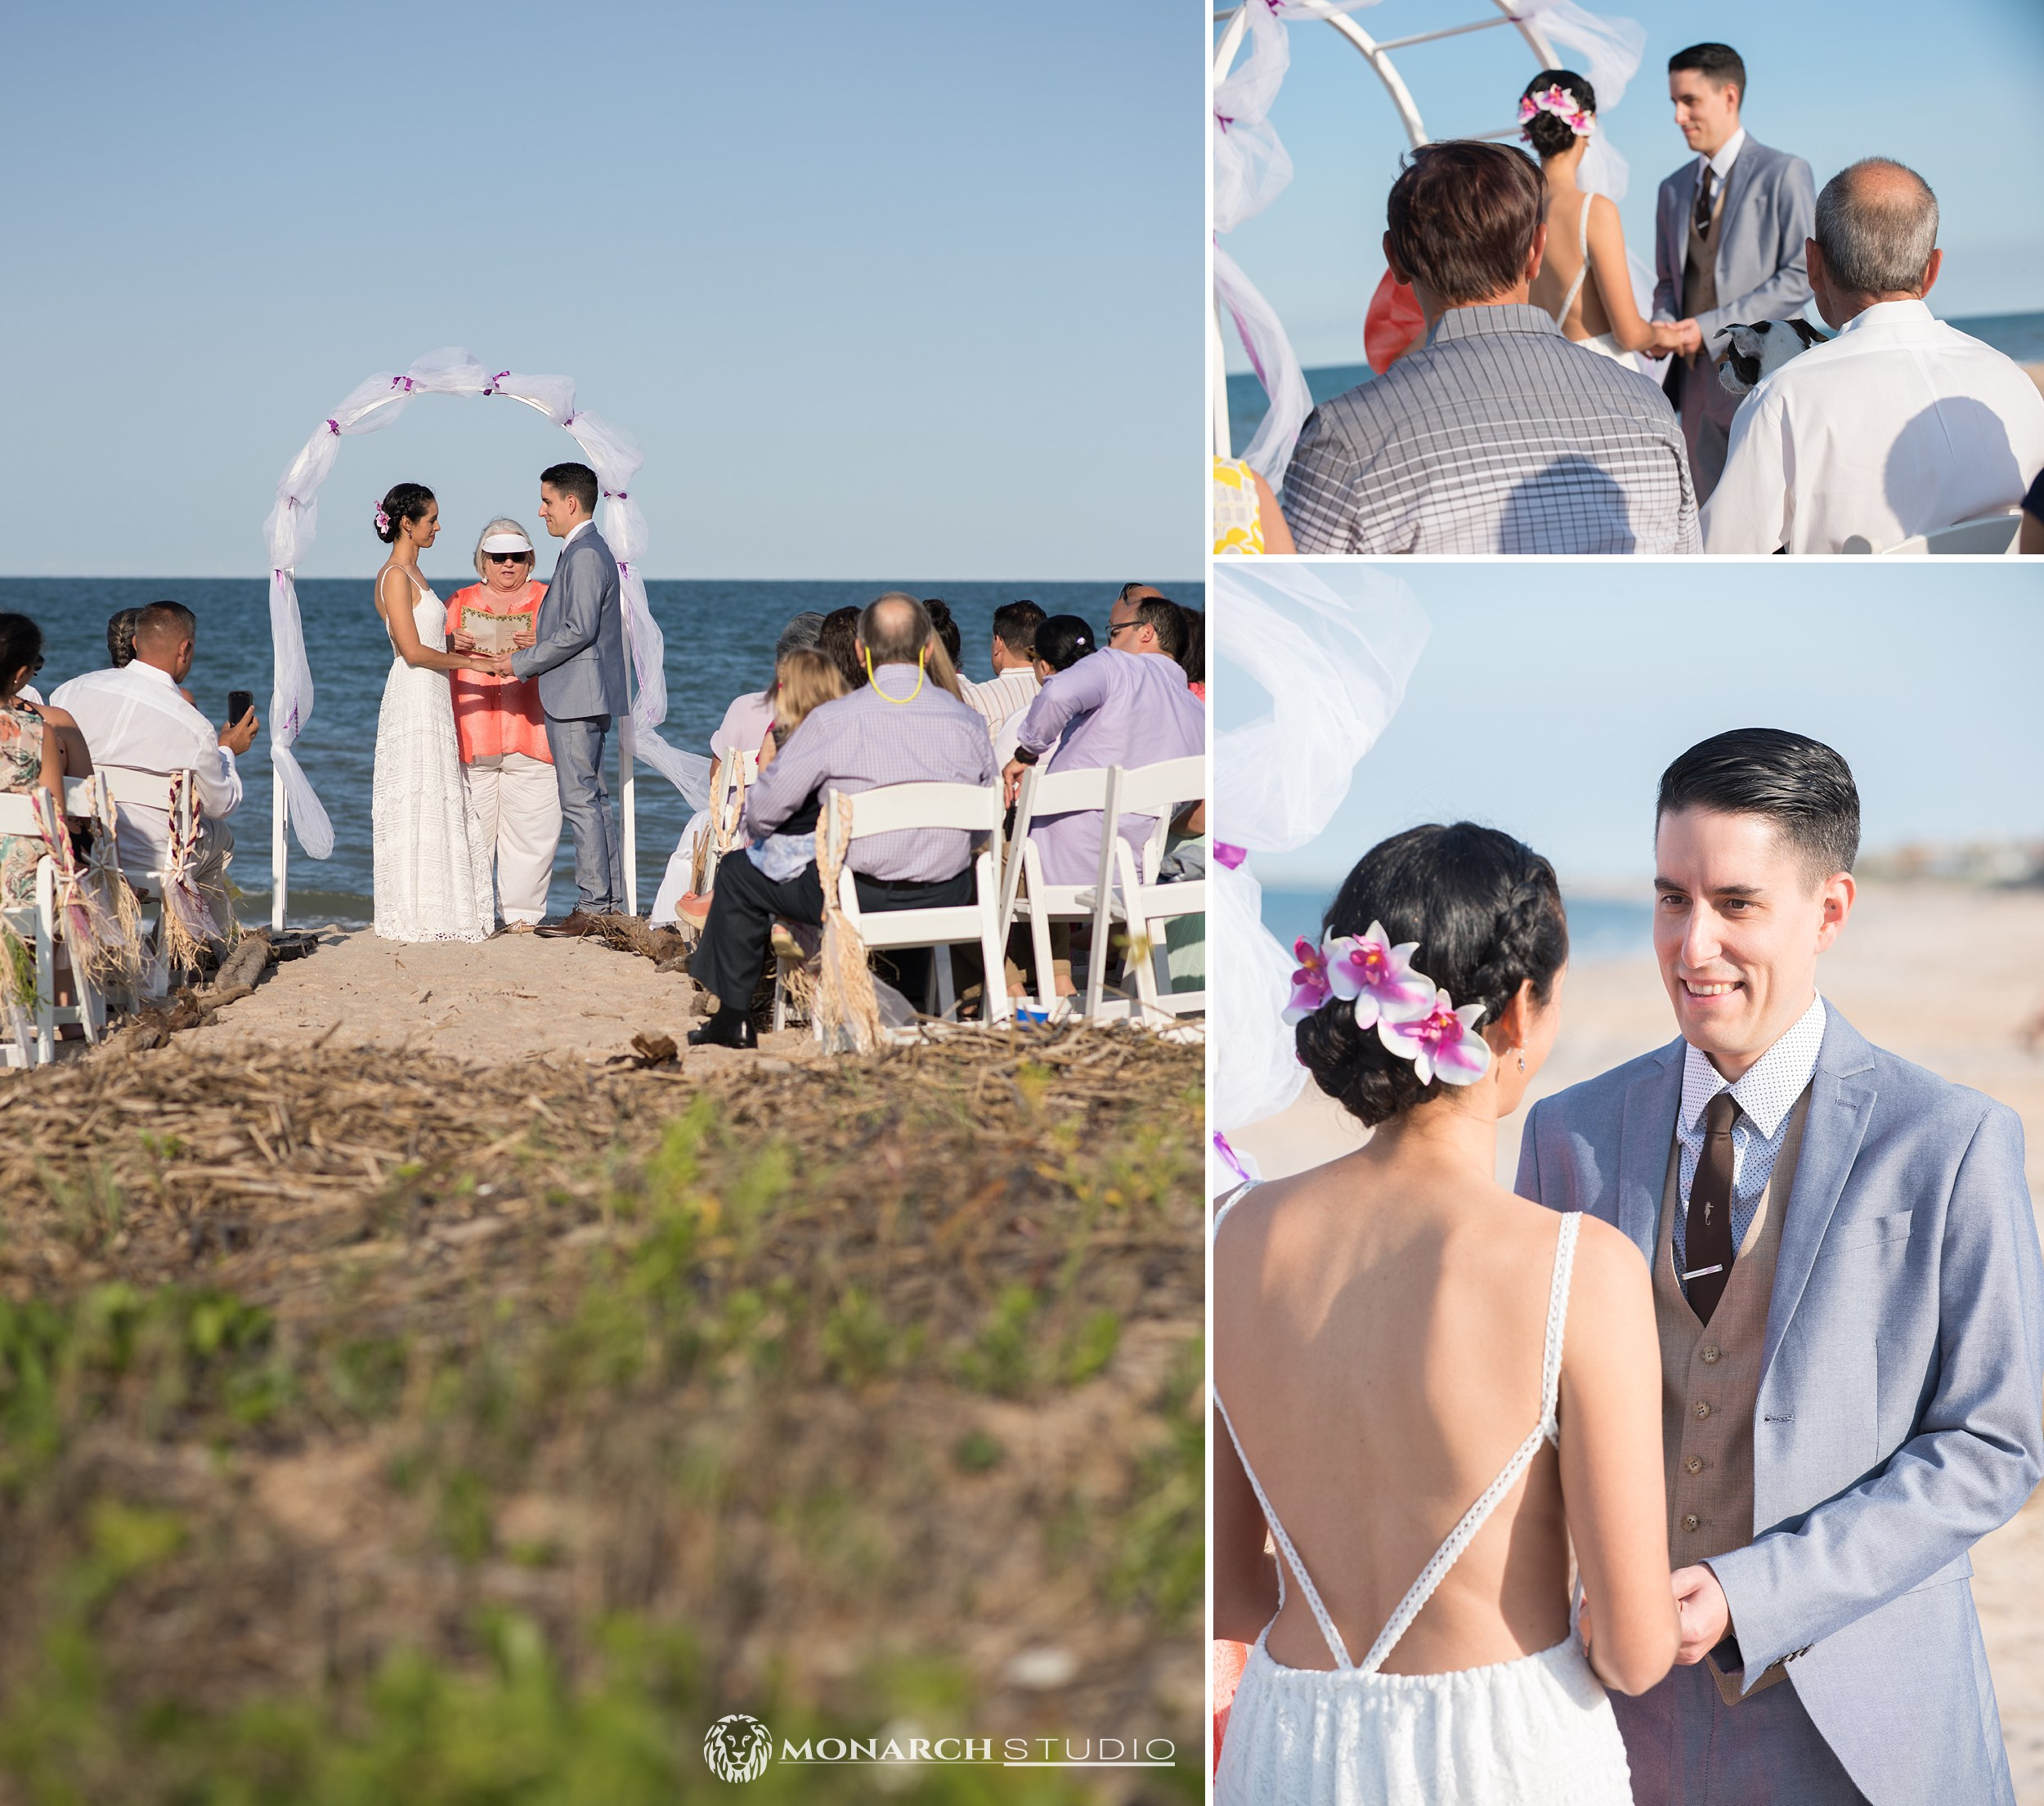 St-Augustine-Elopement-Wedding-Photographer_0008.jpg